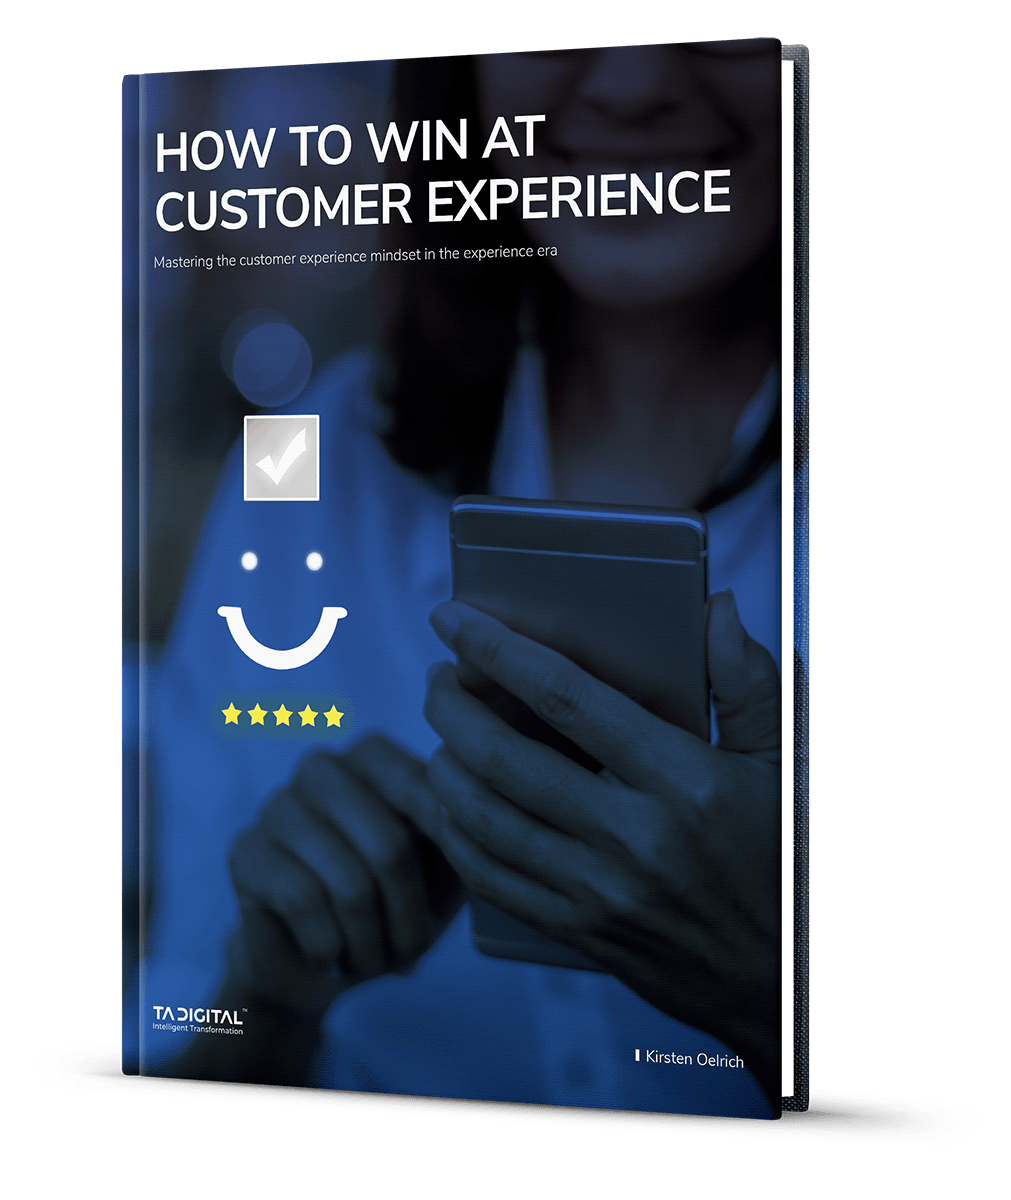 How to Win at Customer Experience